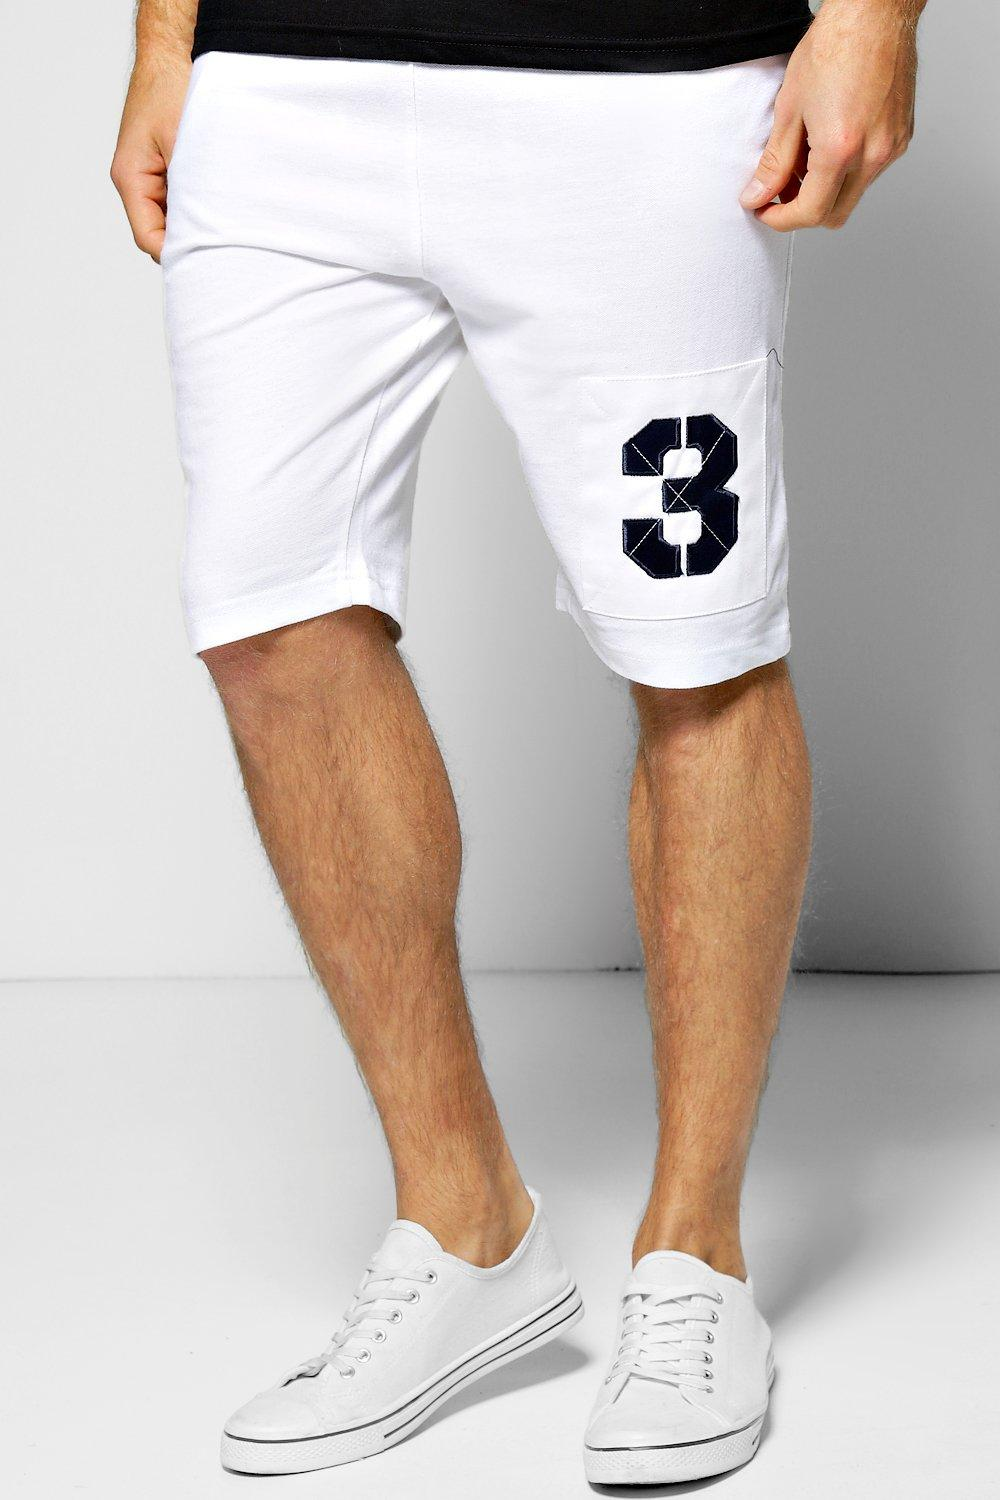 Cotton Pique Shorts With Embroidered Number